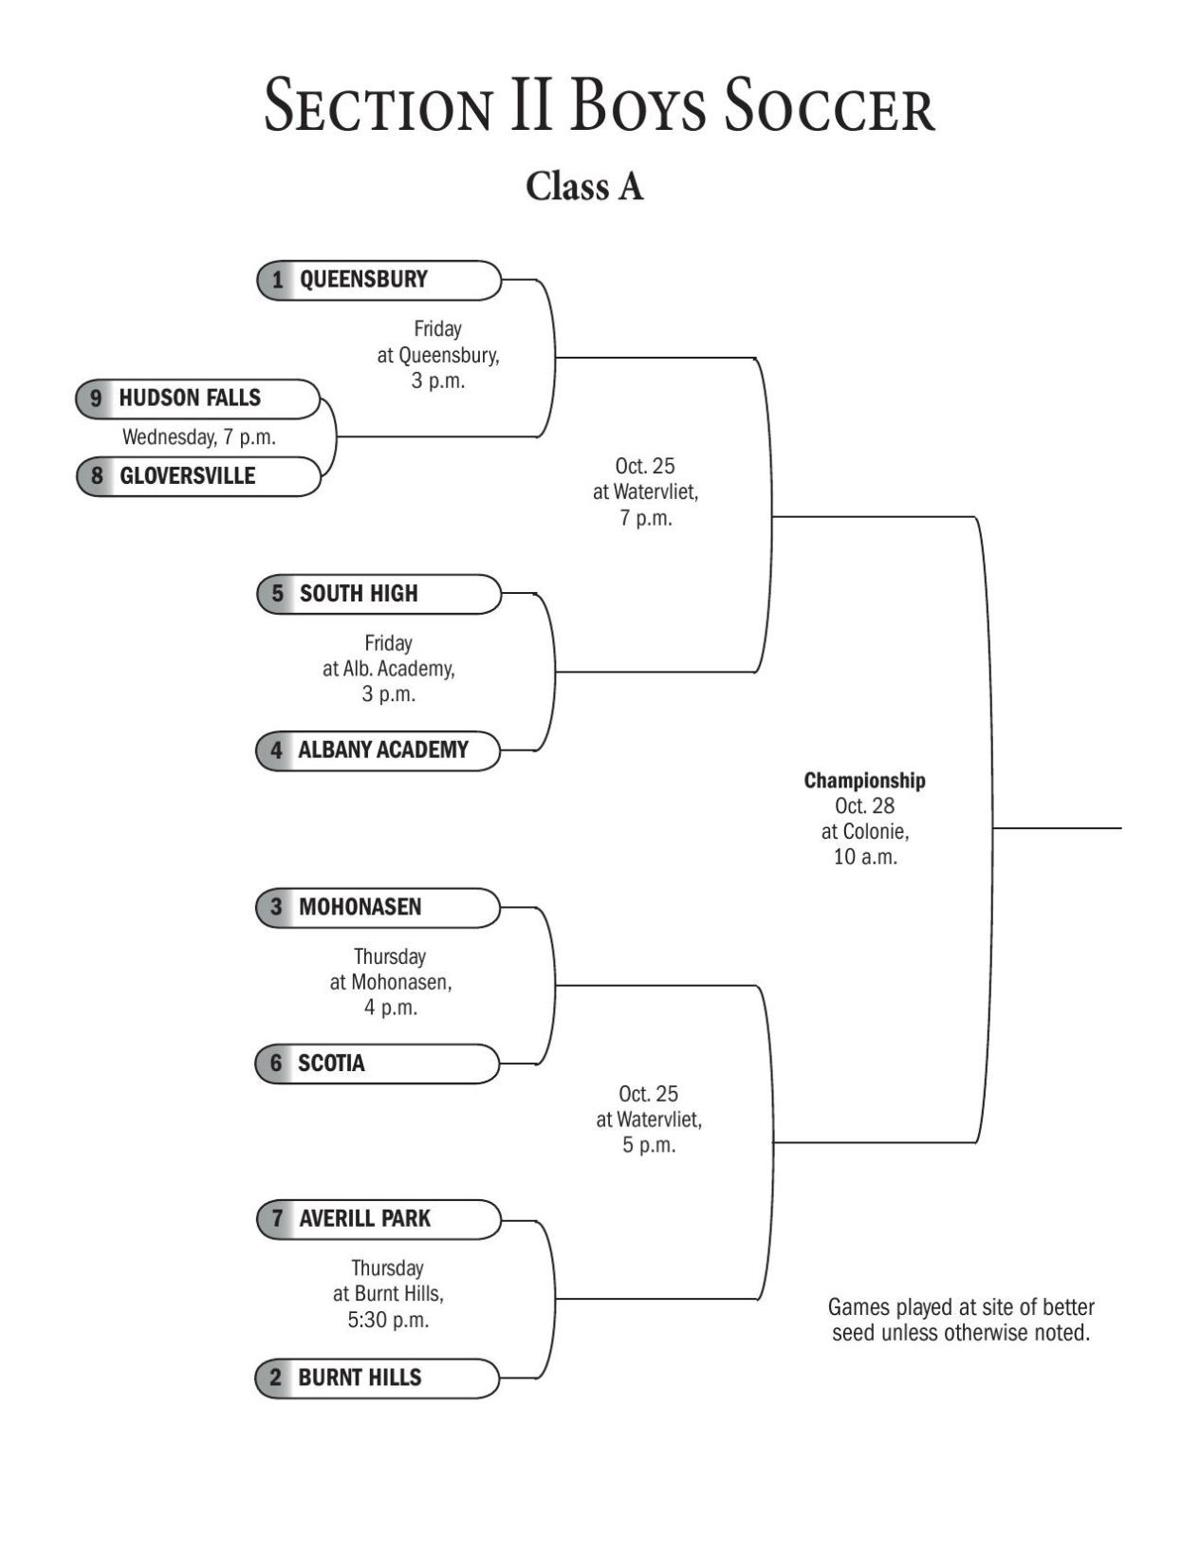 Sectional Charts Pdf : Charts sectional boys soccer brackets sports poststar